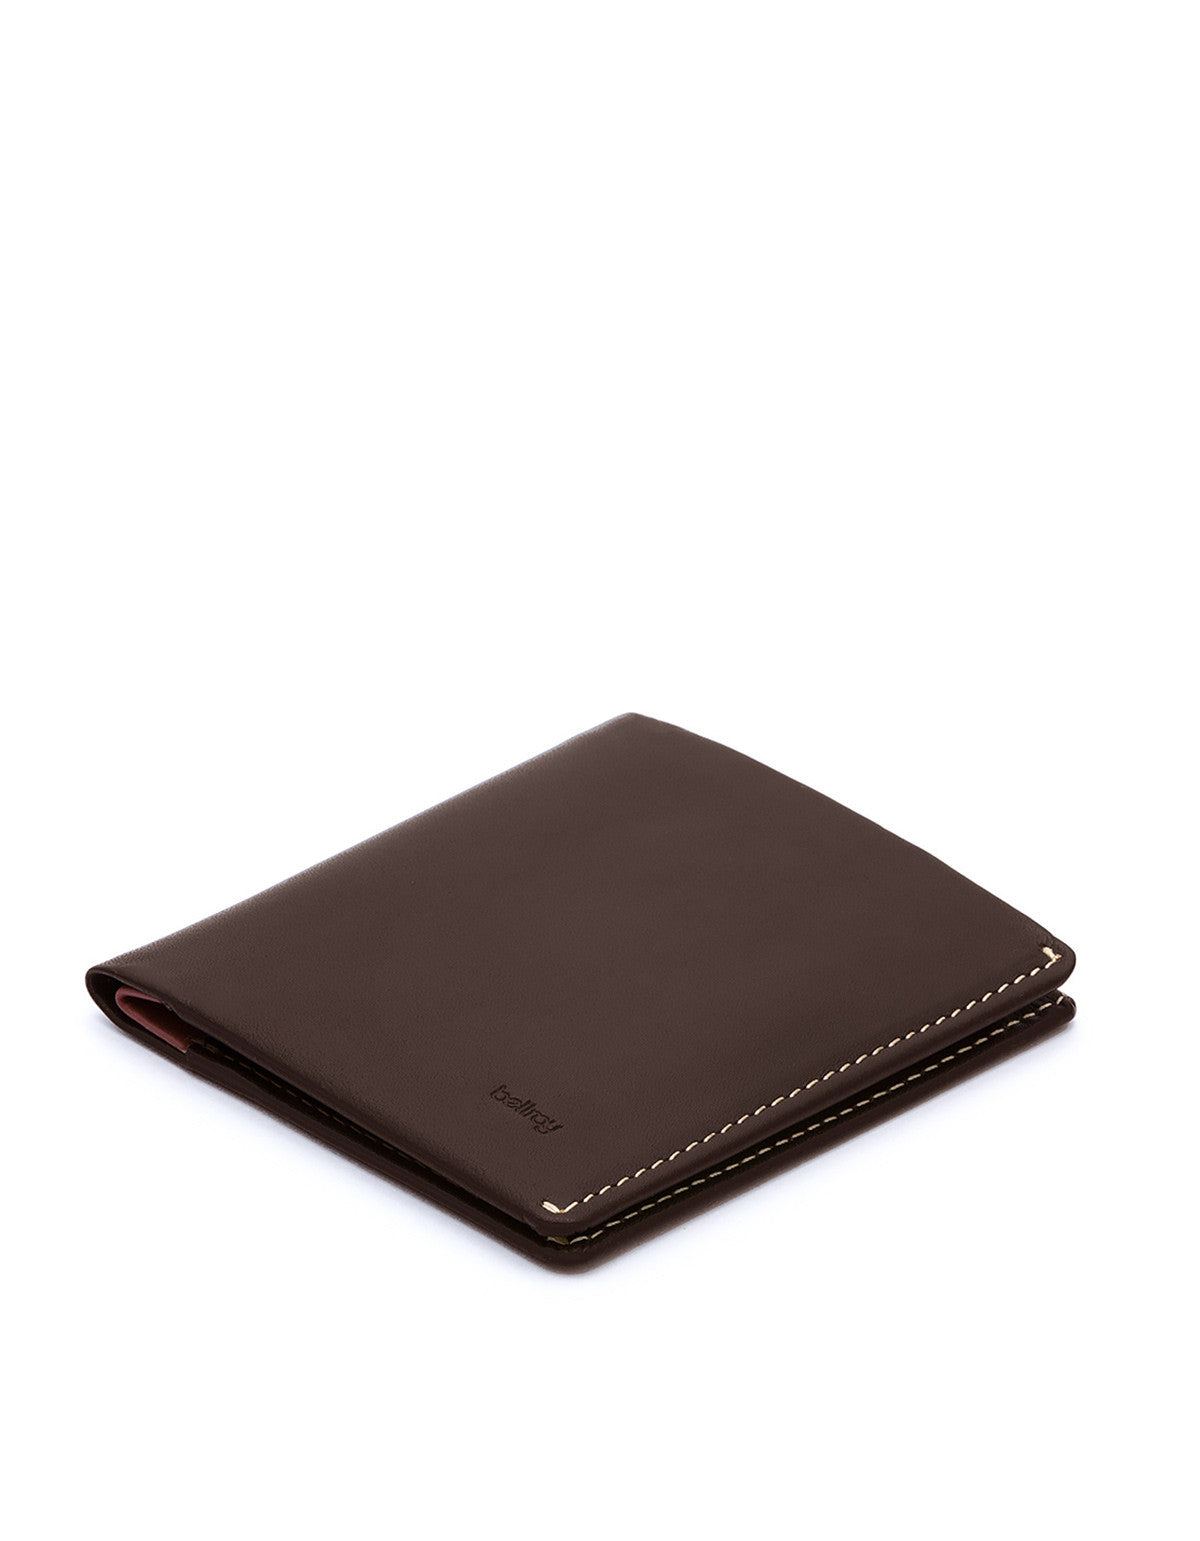 Bellroy Note Sleeve Wallet Java - Still Life - 2